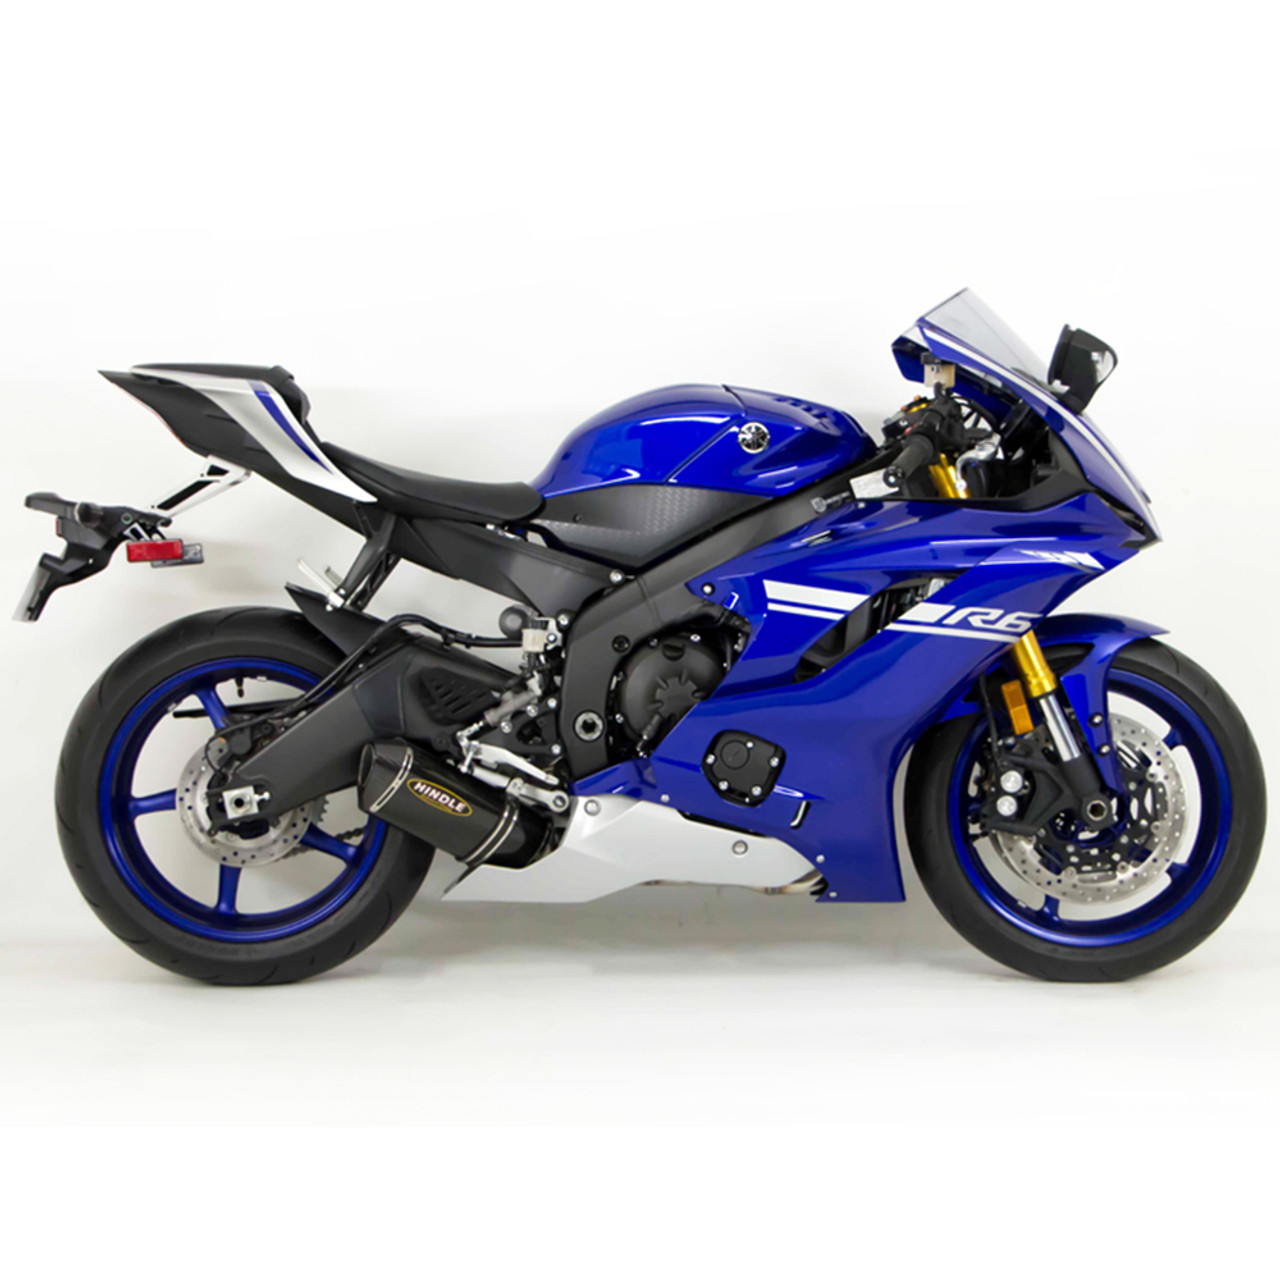 Hindle evolution full exhaust system yamaha r6 2006 2018 for Best exhaust system for yamaha r6